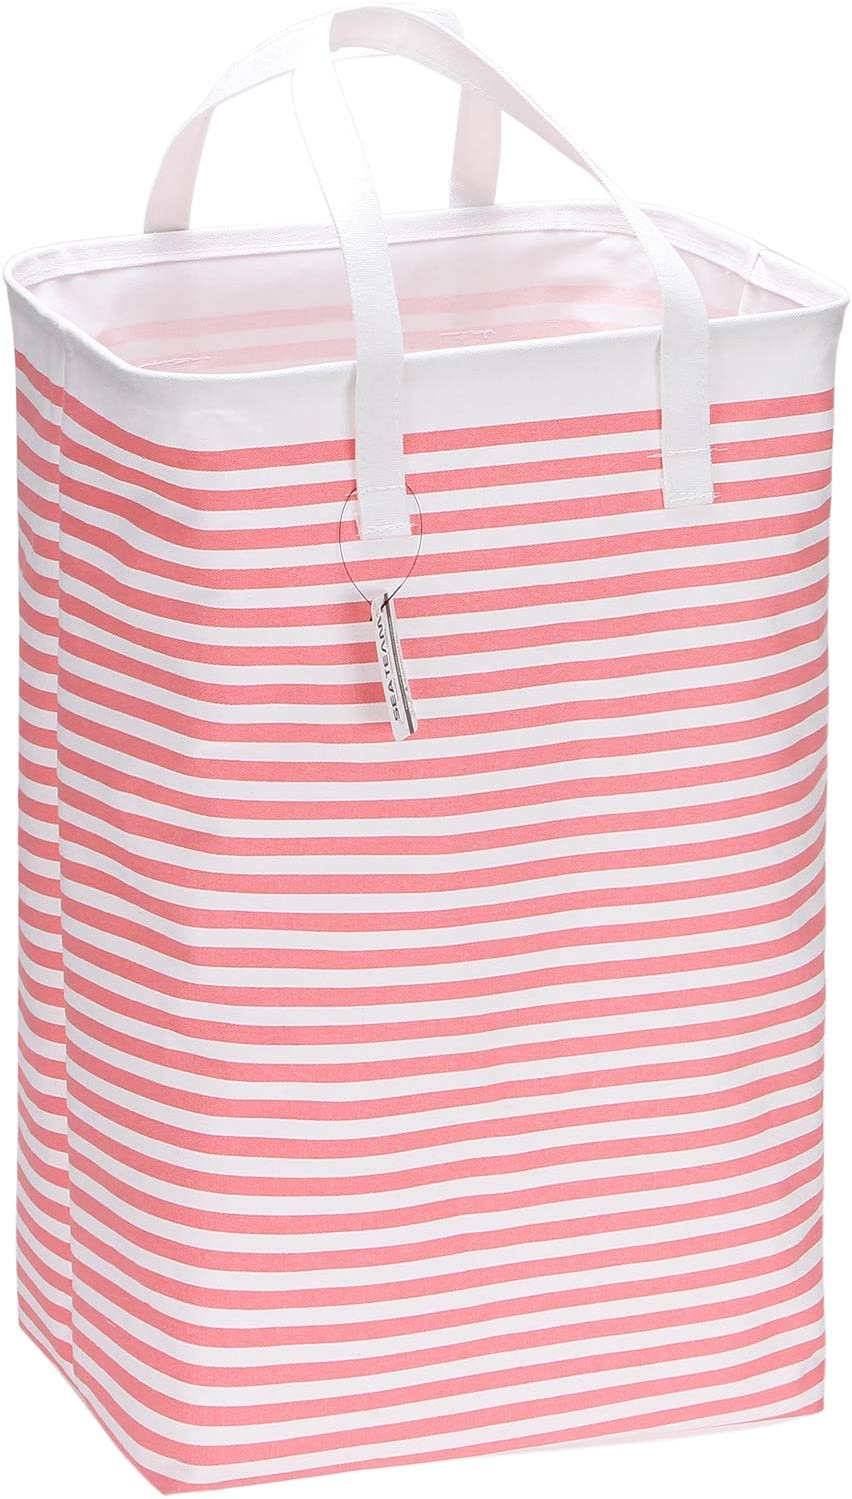 "Sea Team 23.6"" Large Size Canvas Fabric Laundry Hamper Collapsible Rectangular Storage Basket with Waterproof Coating Inner and Handles, Pink & White Stripe"